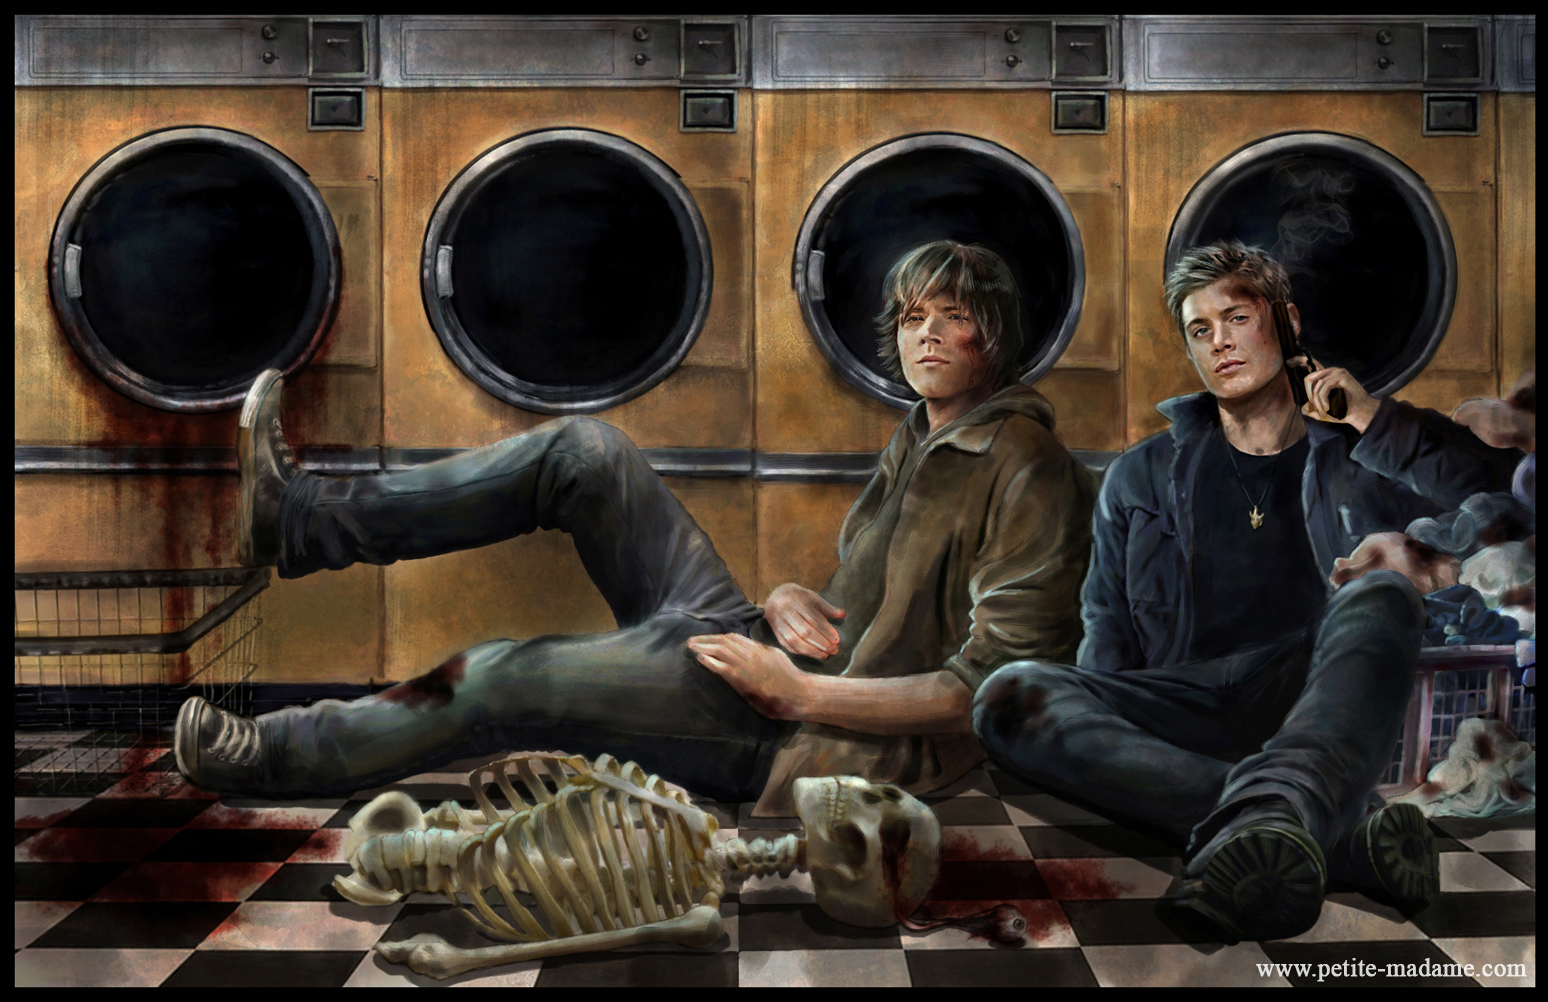 http://fc05.deviantart.net/fs71/f/2010/059/2/a/Winchesters___Laundry_Day_by_Petite_Madame.jpg